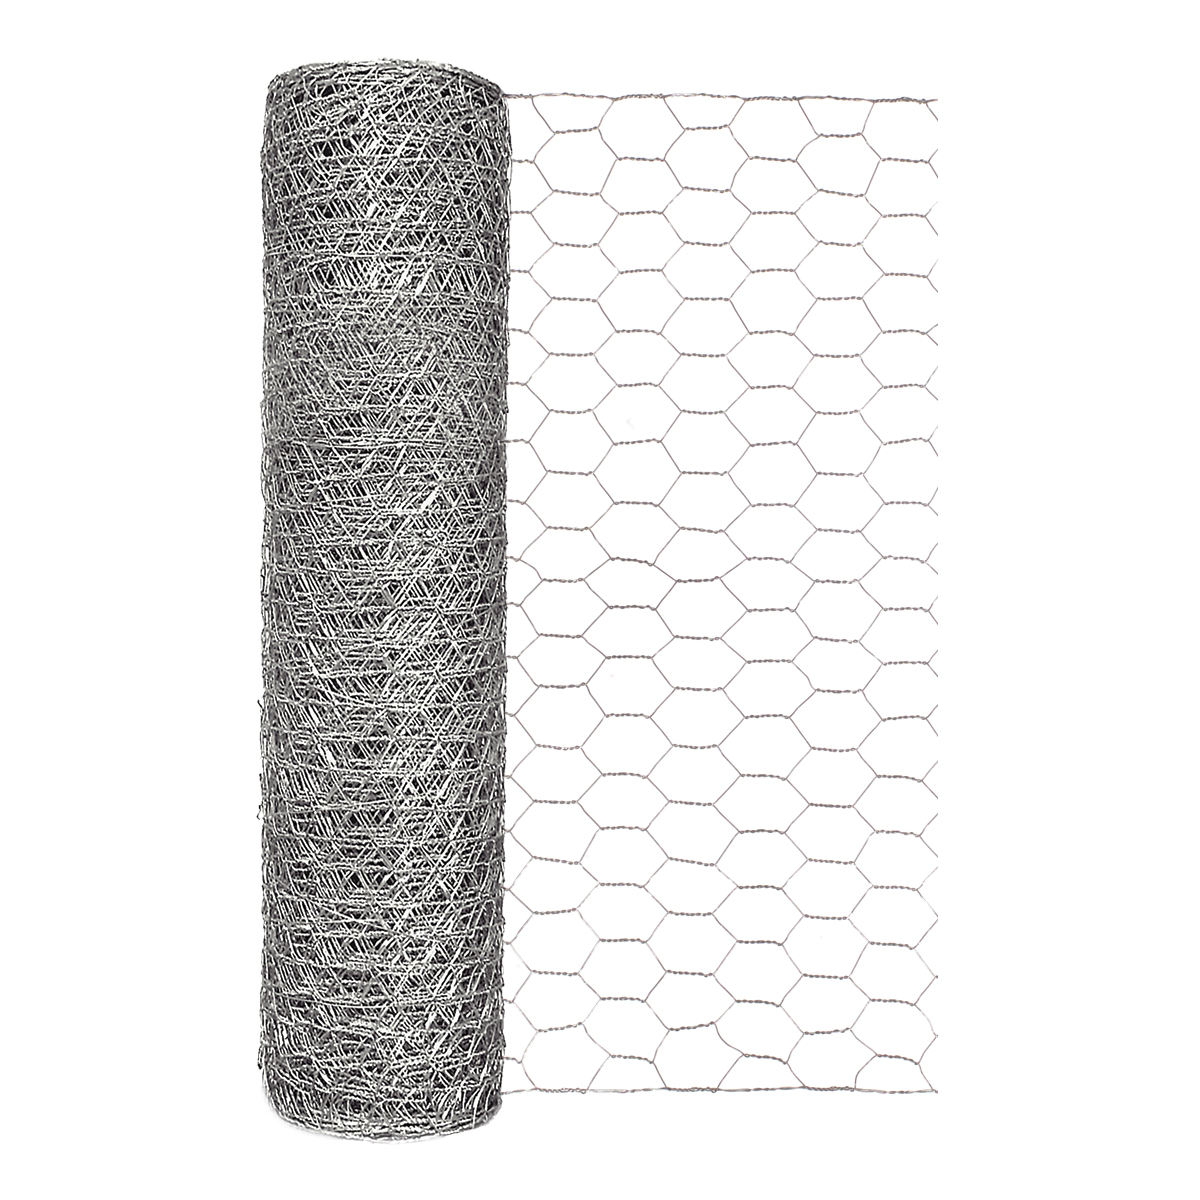 Galvanized Hexagonal Wire Netting Chicken Wire Mesh 25ミリメートルMesh Size